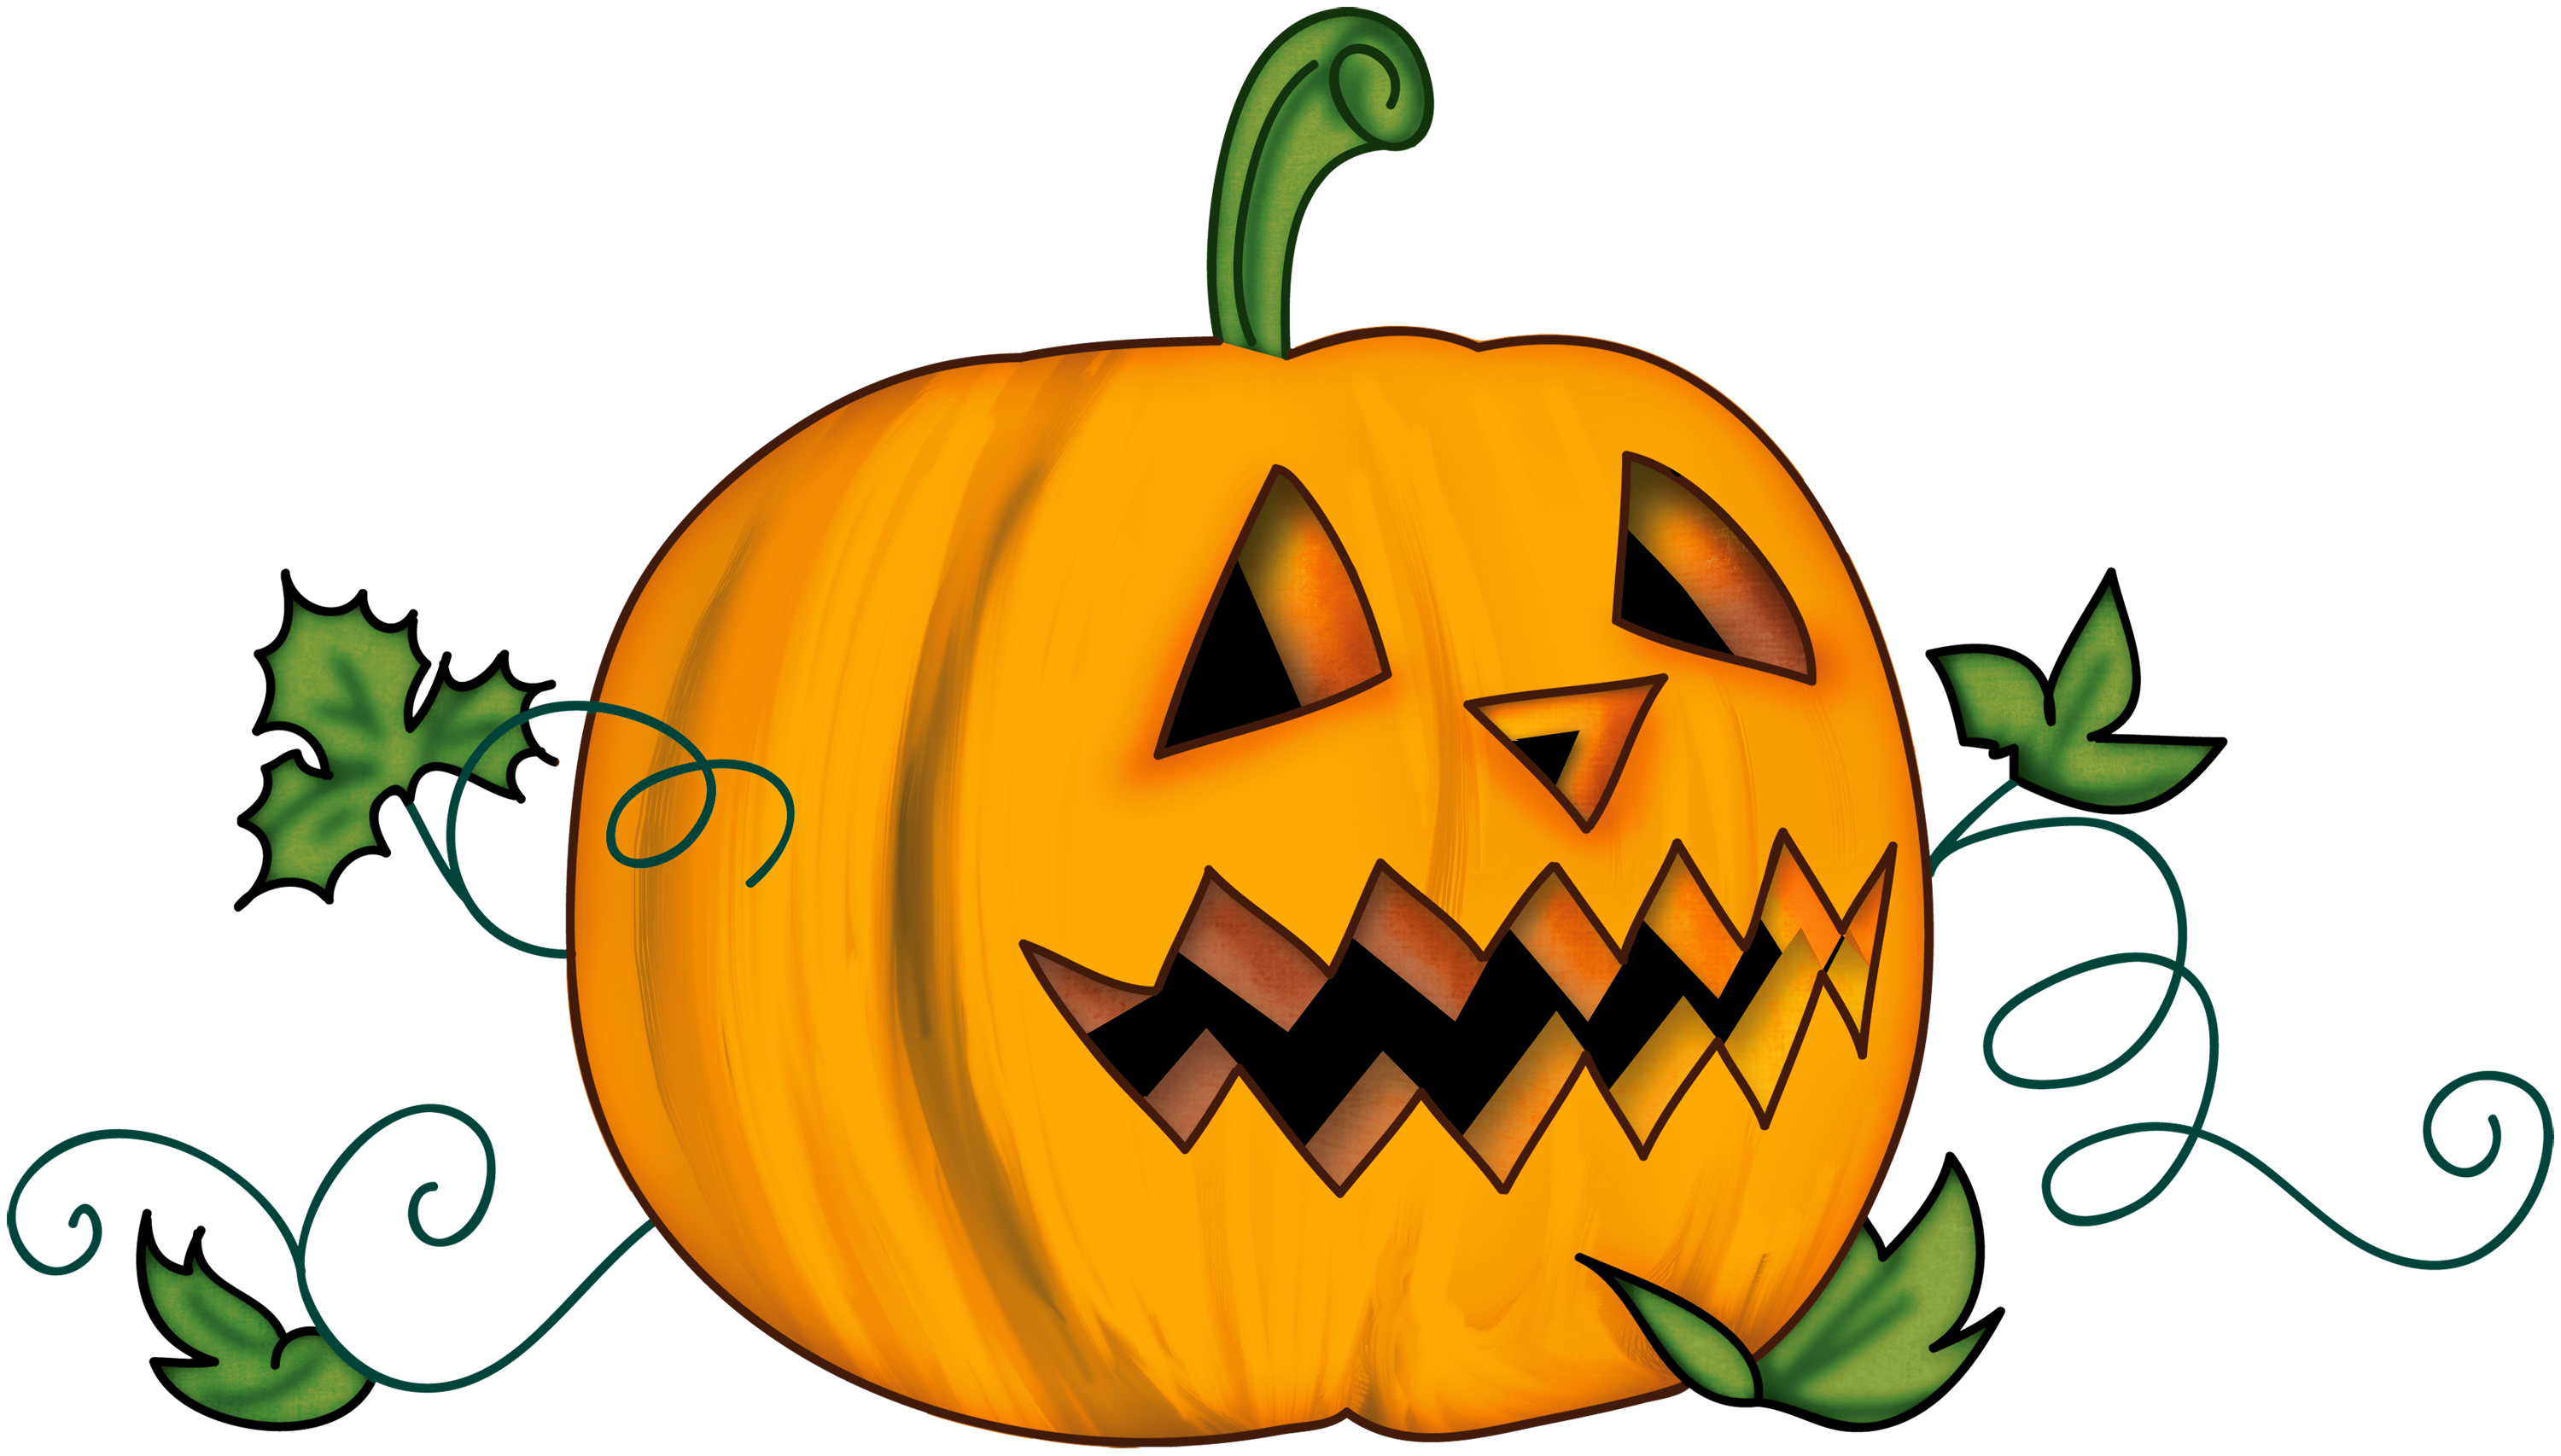 halloween image clipart - photo #13